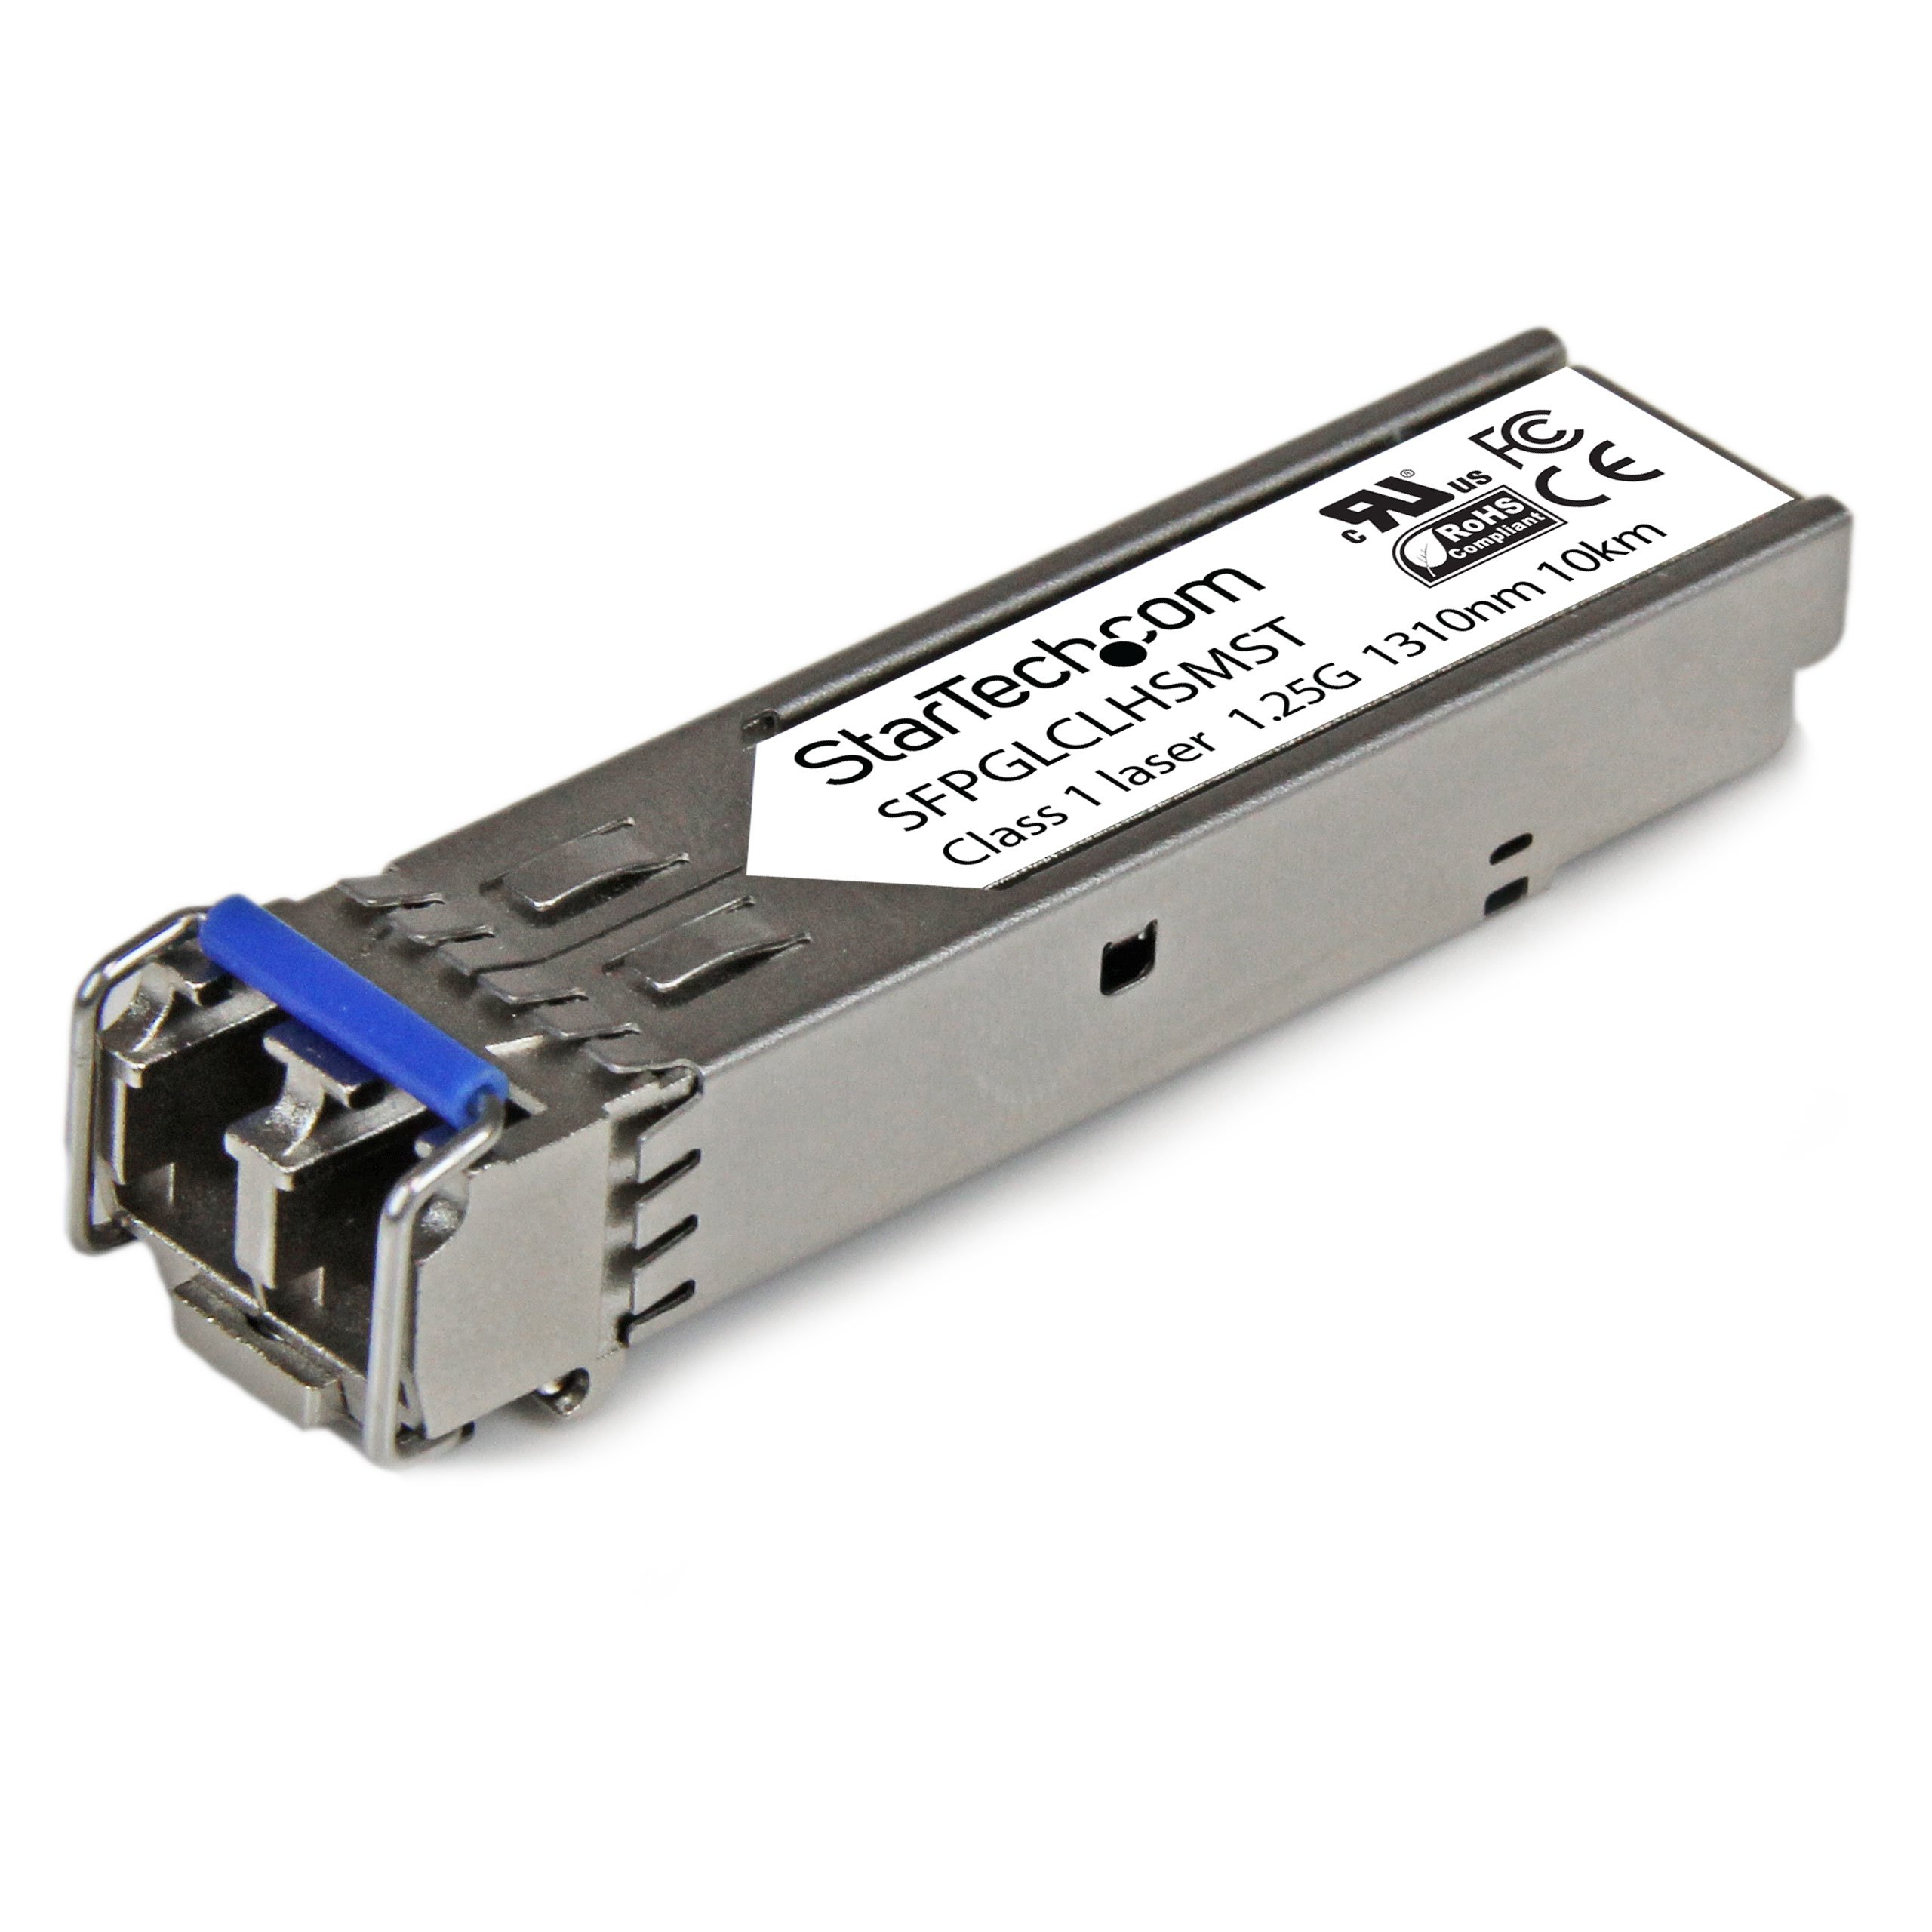 StarTech.com Cisco GLC-LH-SM Compatible SFP Module - 1000BASE-LX/LH Fiber Optical Transceiver (SFPGLCLHSMST) by StarTech